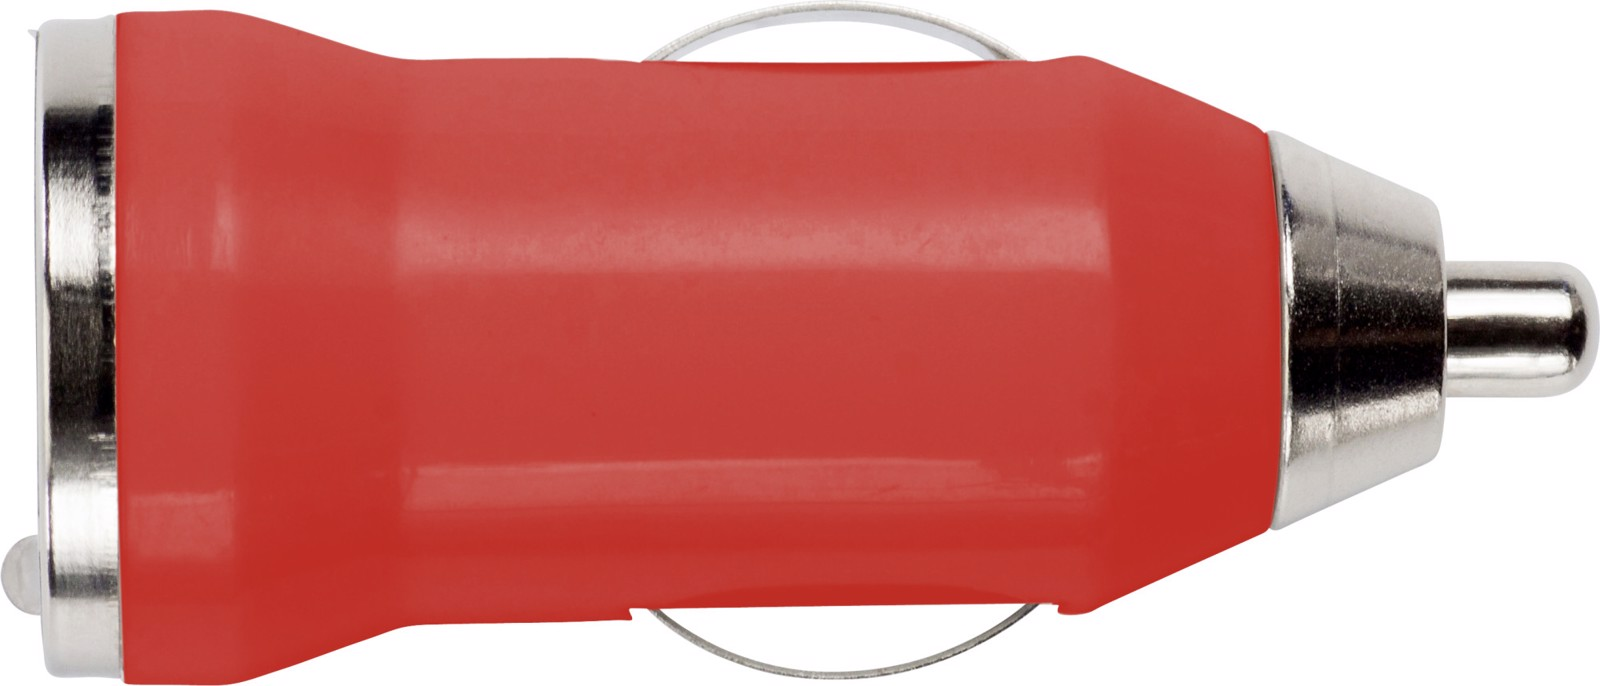 ABS car power adapter - Red